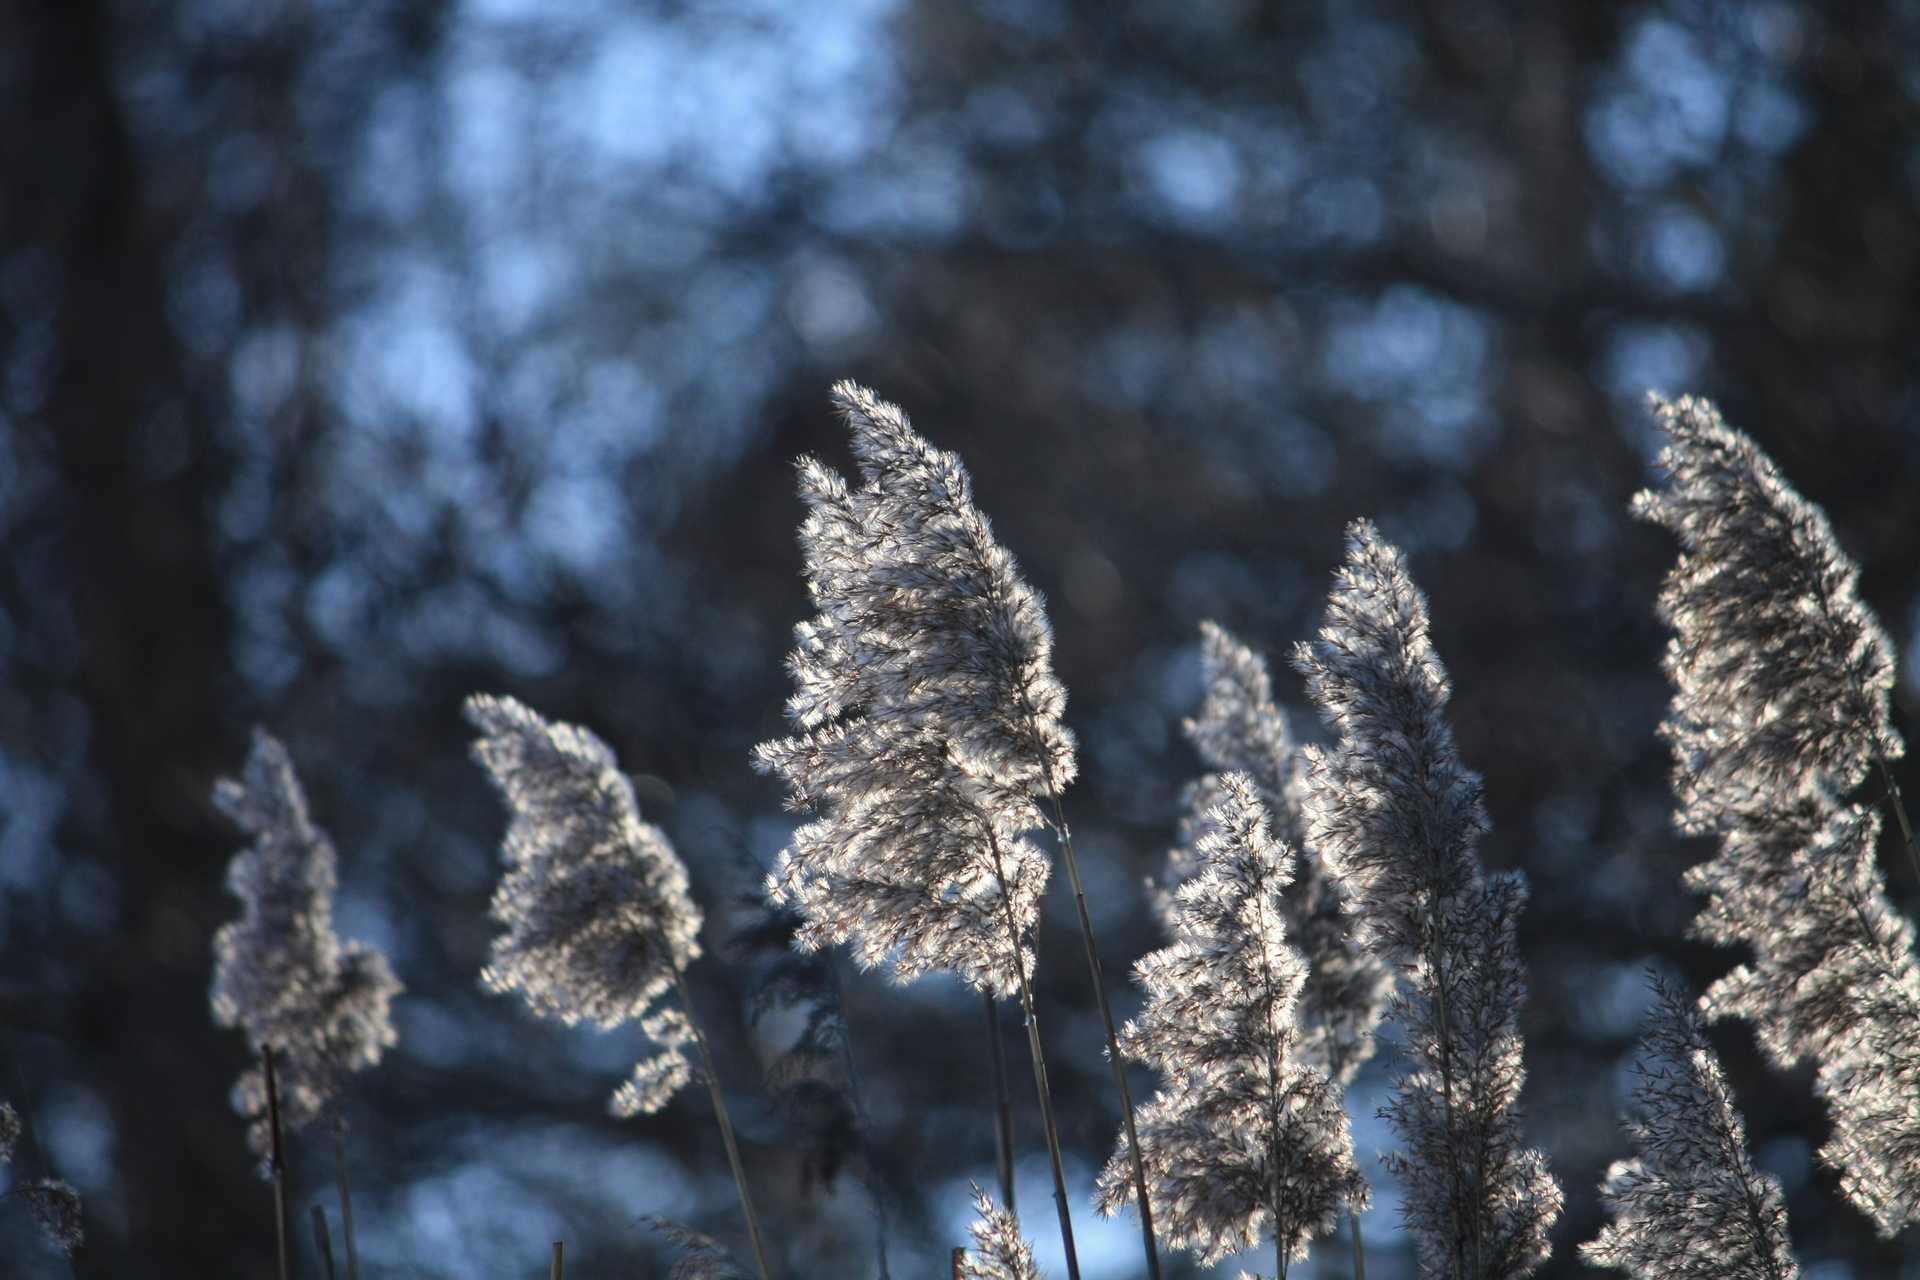 View of plants blowing in the wind